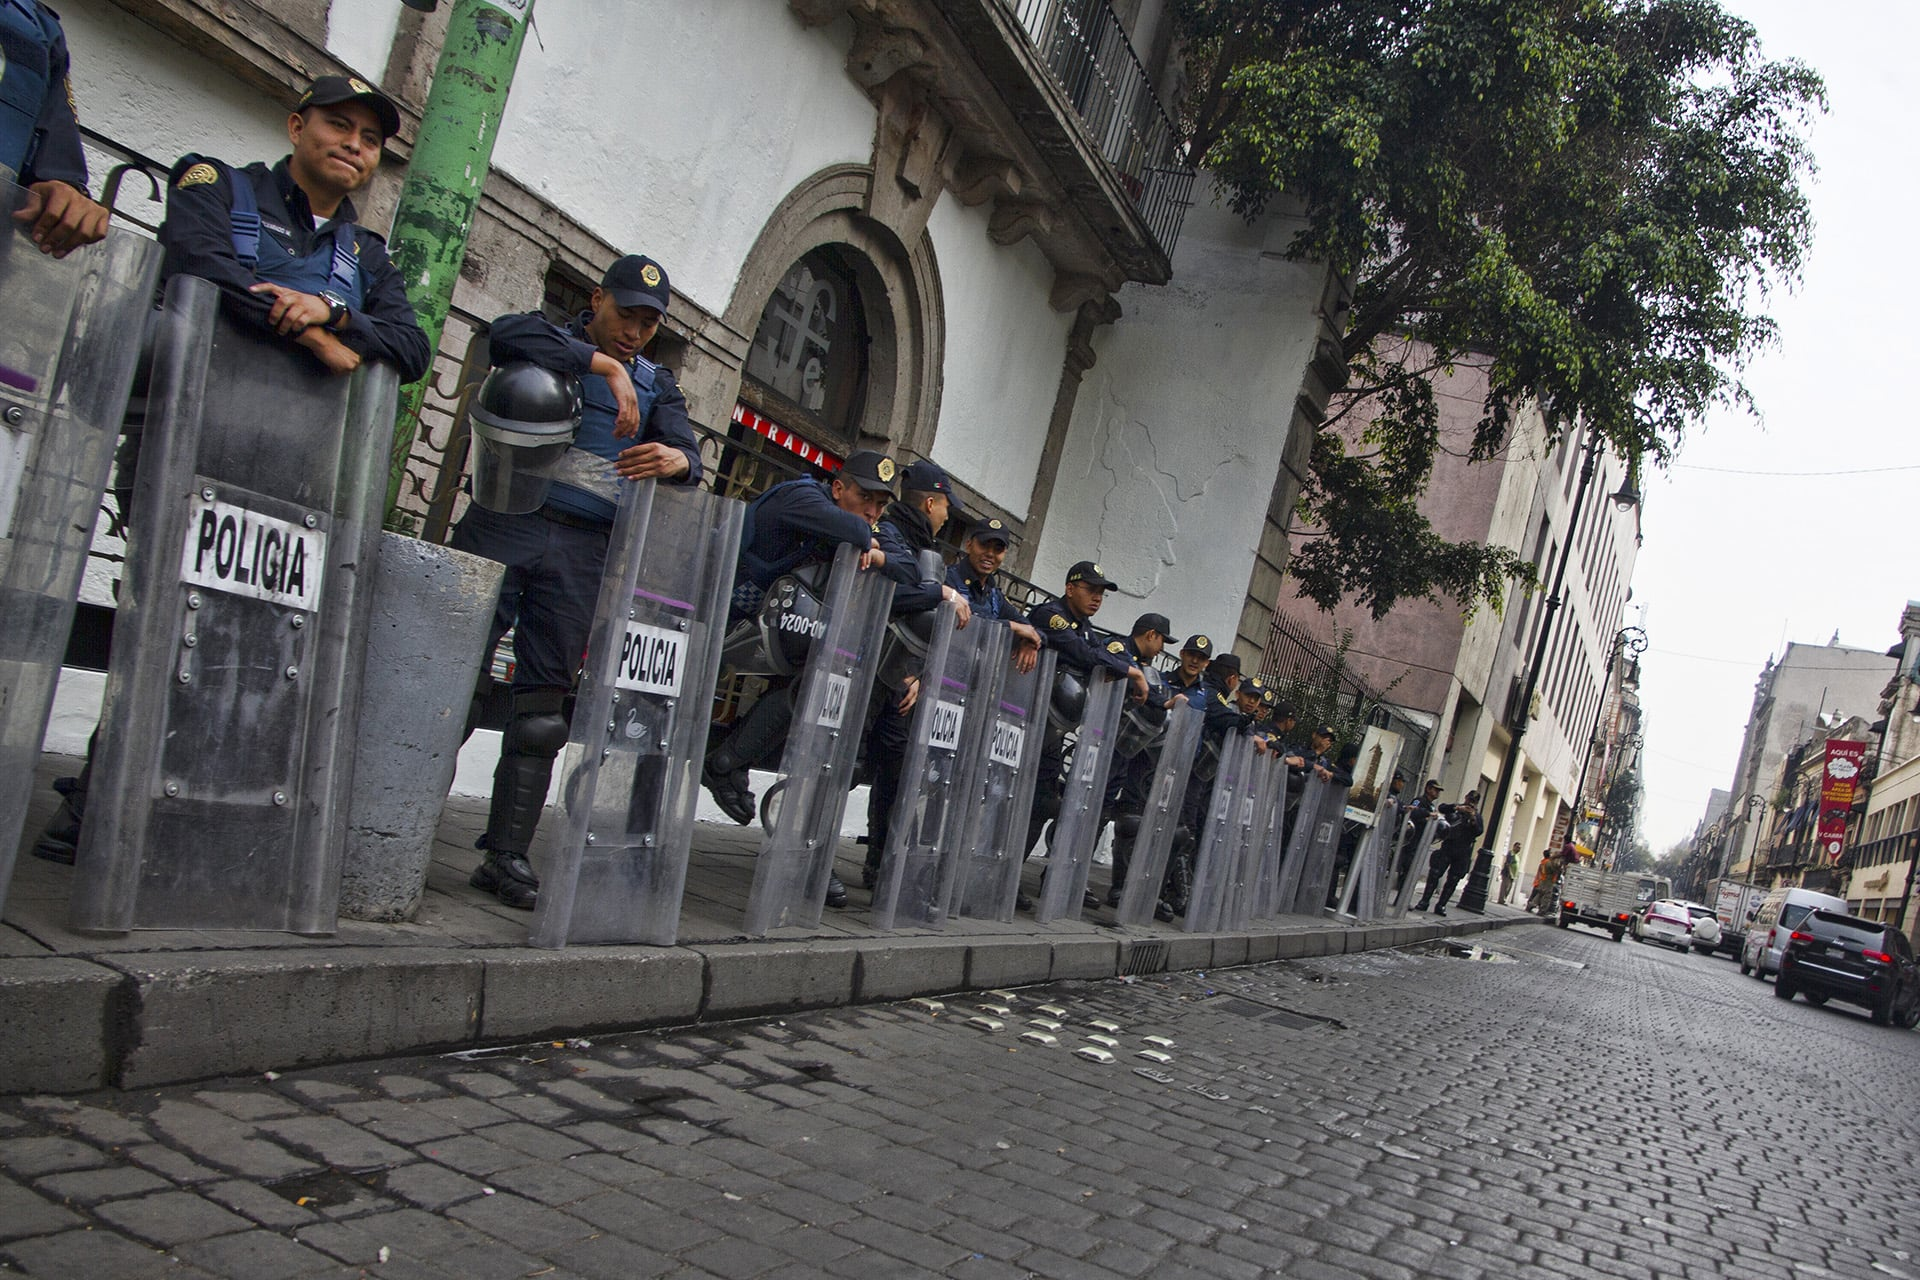 Daily gatherings of protestors demanding government action on the disappearance of 43 students on September 26, 2014 force city police to stay on alert in the  Distrito Federal .